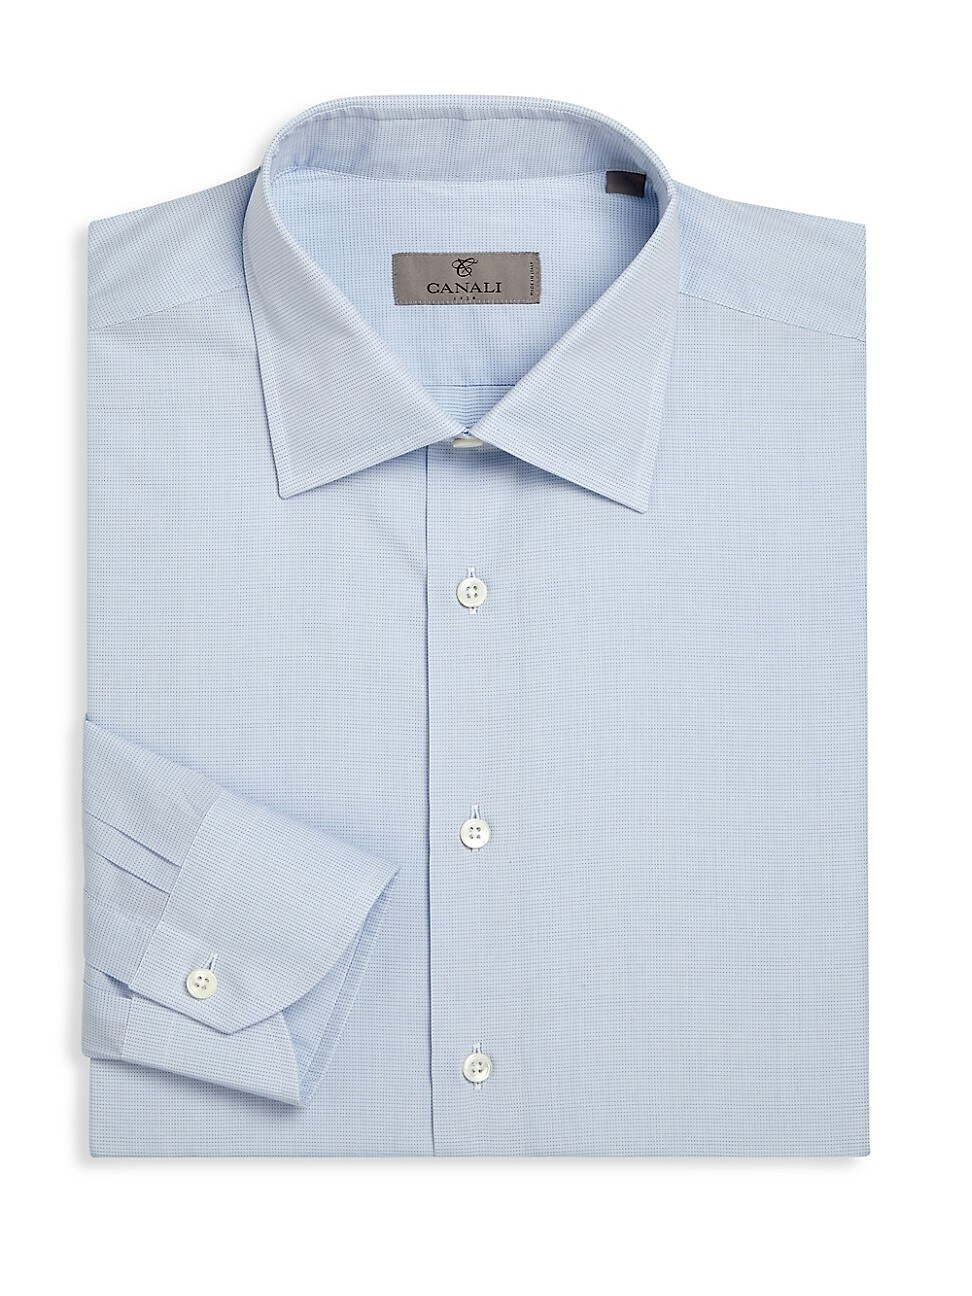 Canali Men's Regular-fit Micro Dotted Dress Shirt In Blue